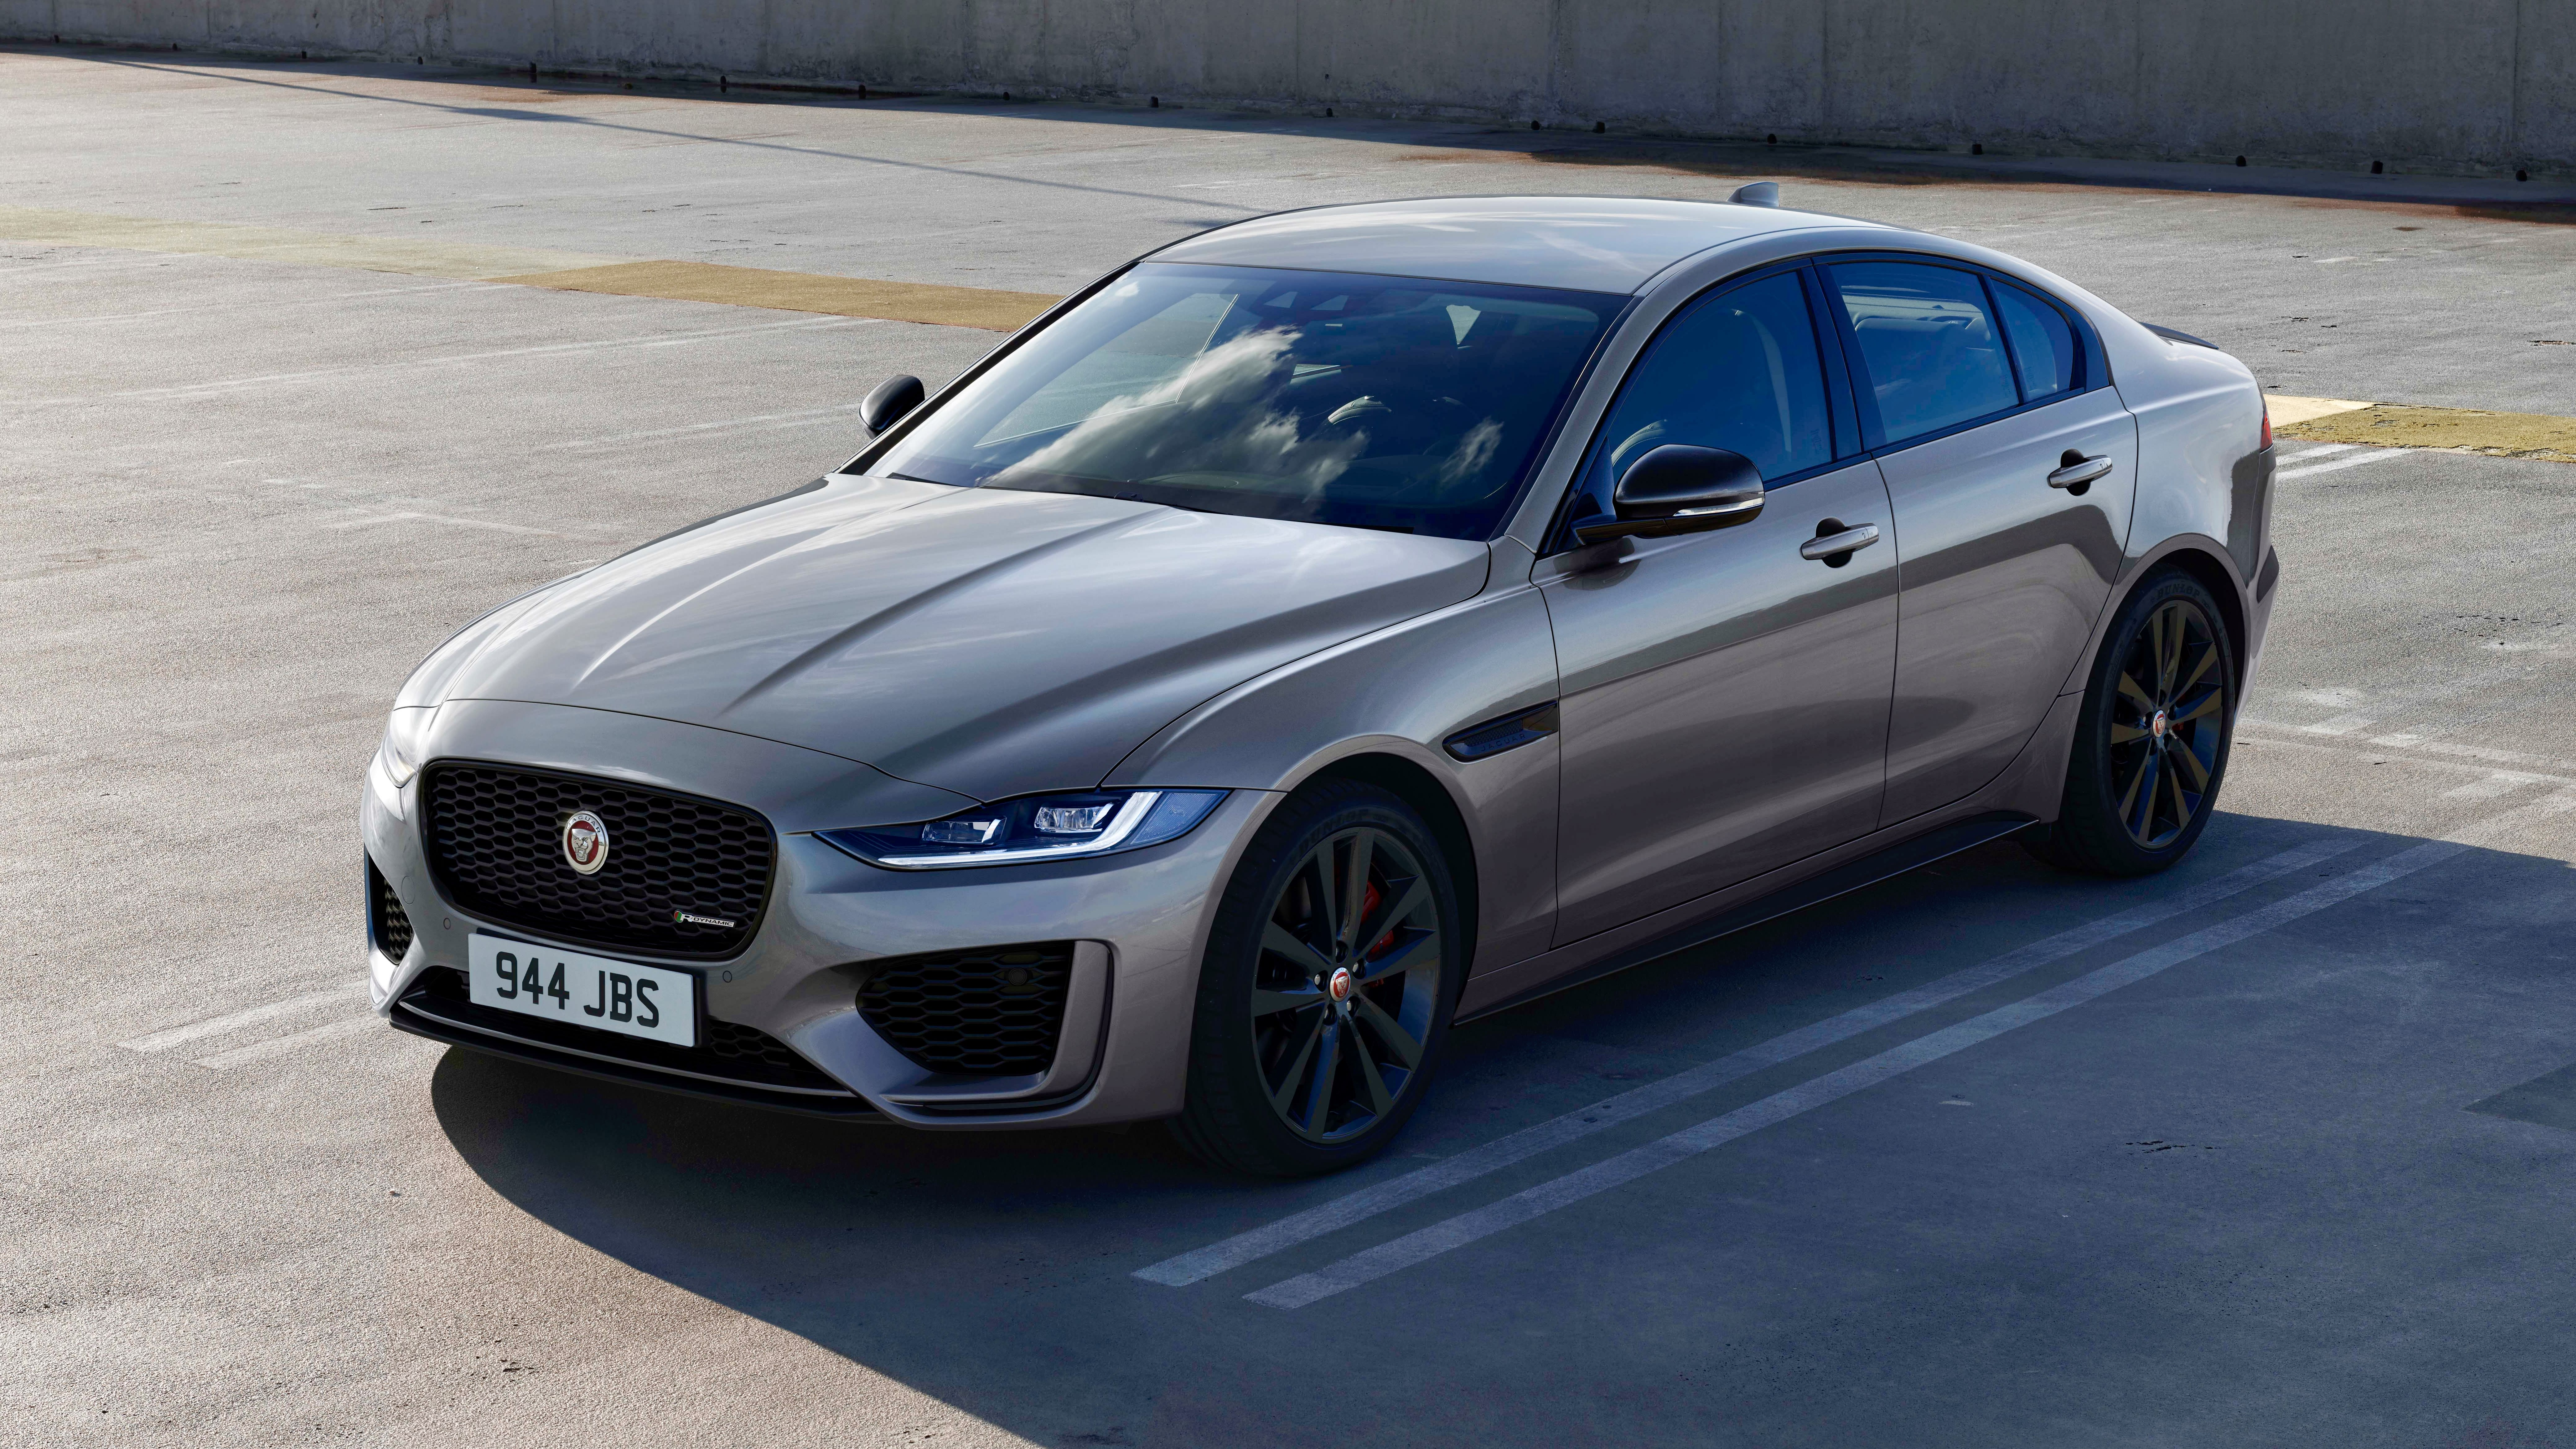 2021 Jaguar Xe Price And Specs Jag S Mid Sizer Goes All Wheel Drive Caradvice